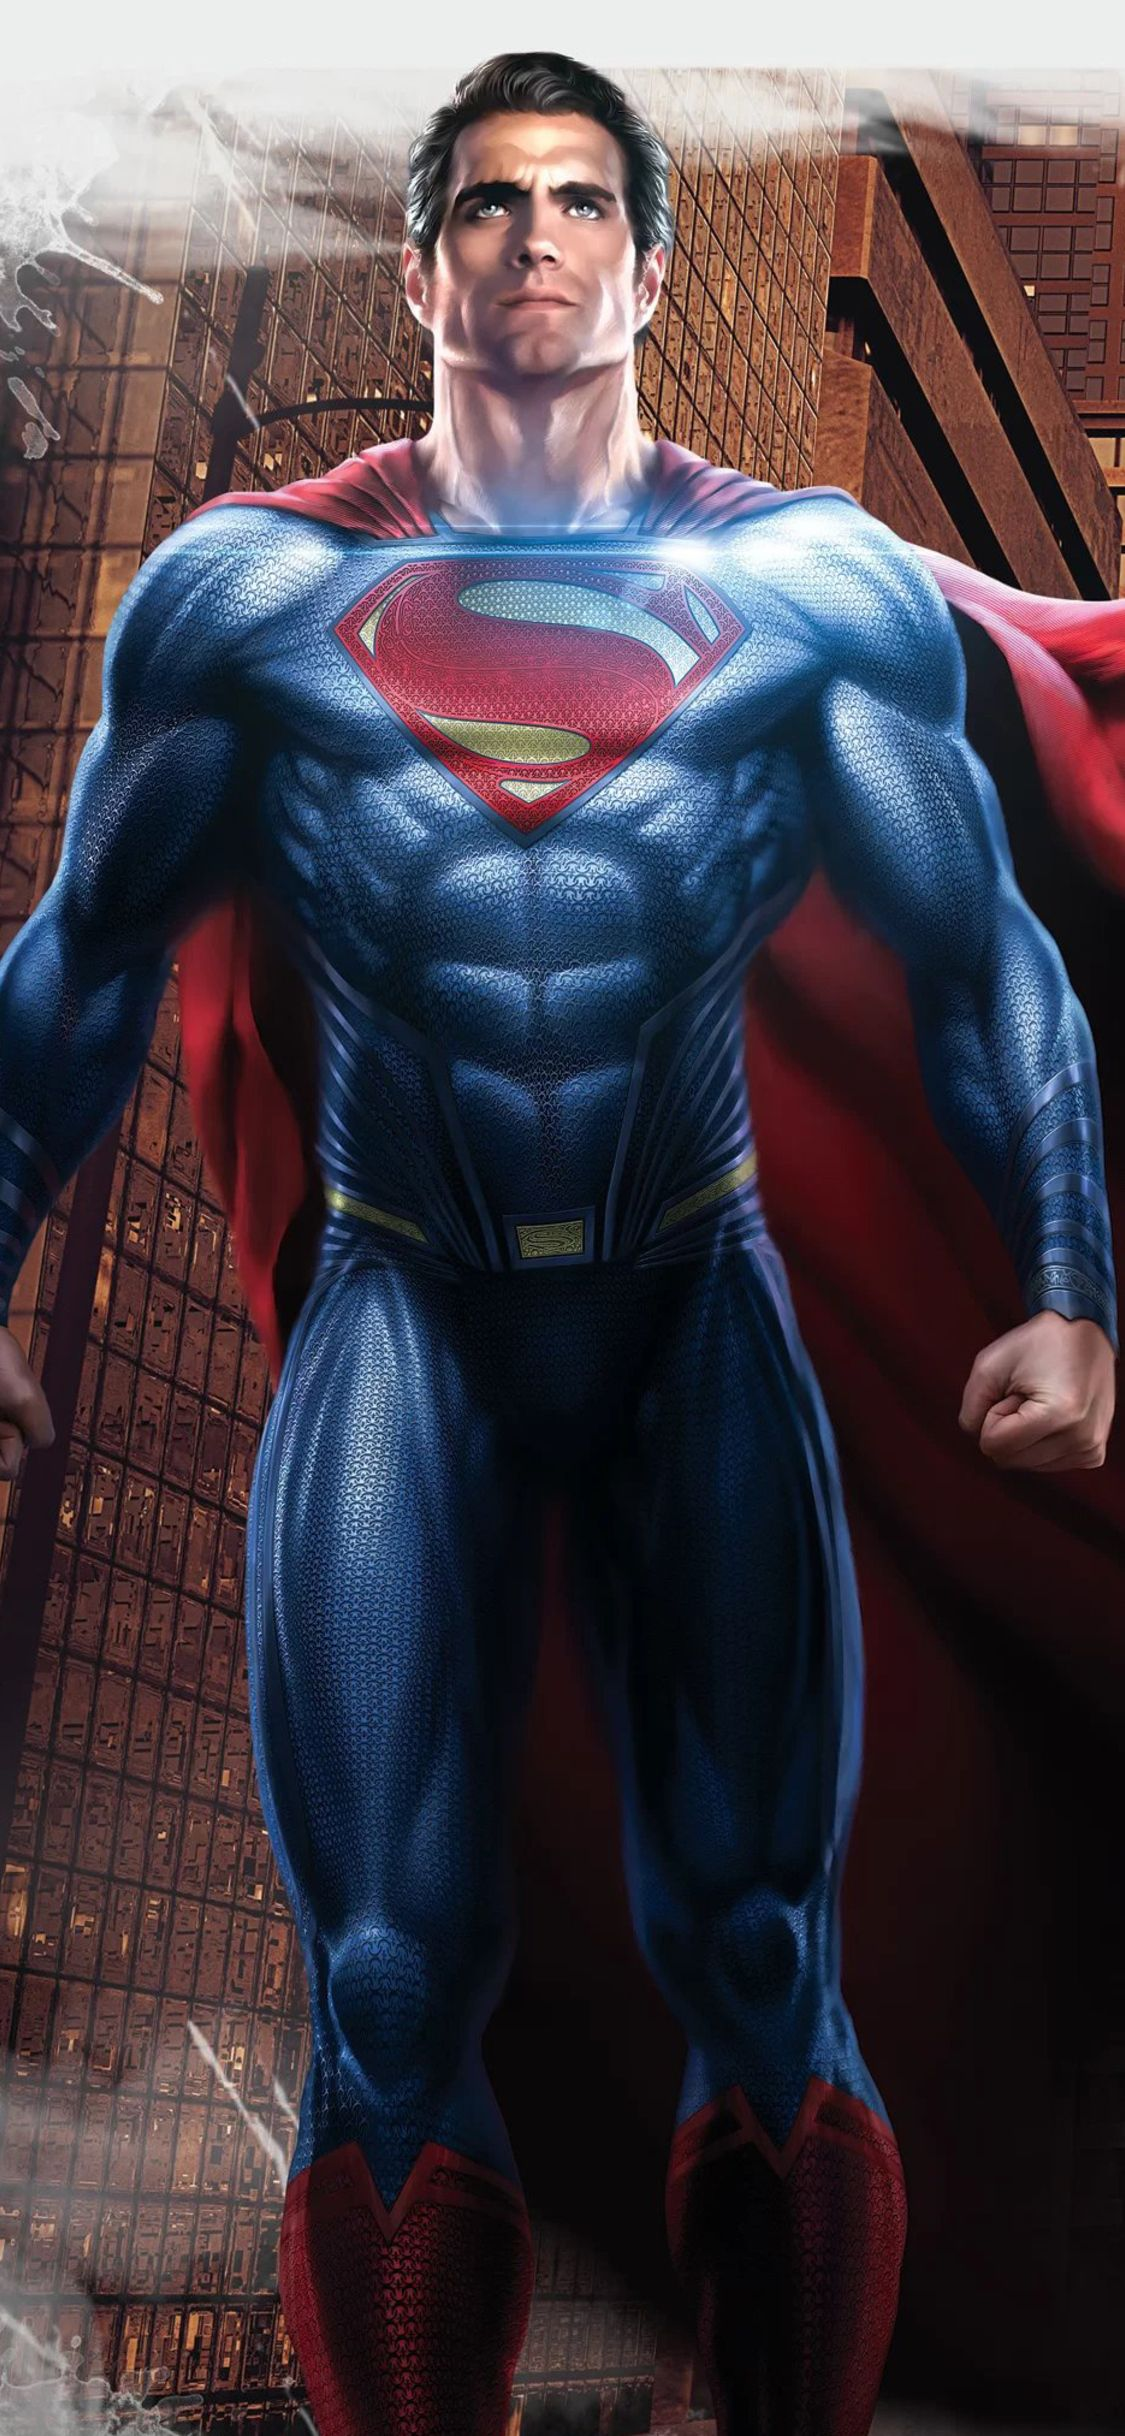 1125x2436 Superman Man Of Steel 4k Iphone Xs Iphone 10 Iphone X Hd 4k Wallpapers Images Back Superman Wallpaper Superman Wallpaper Logo Superman Hd Wallpaper